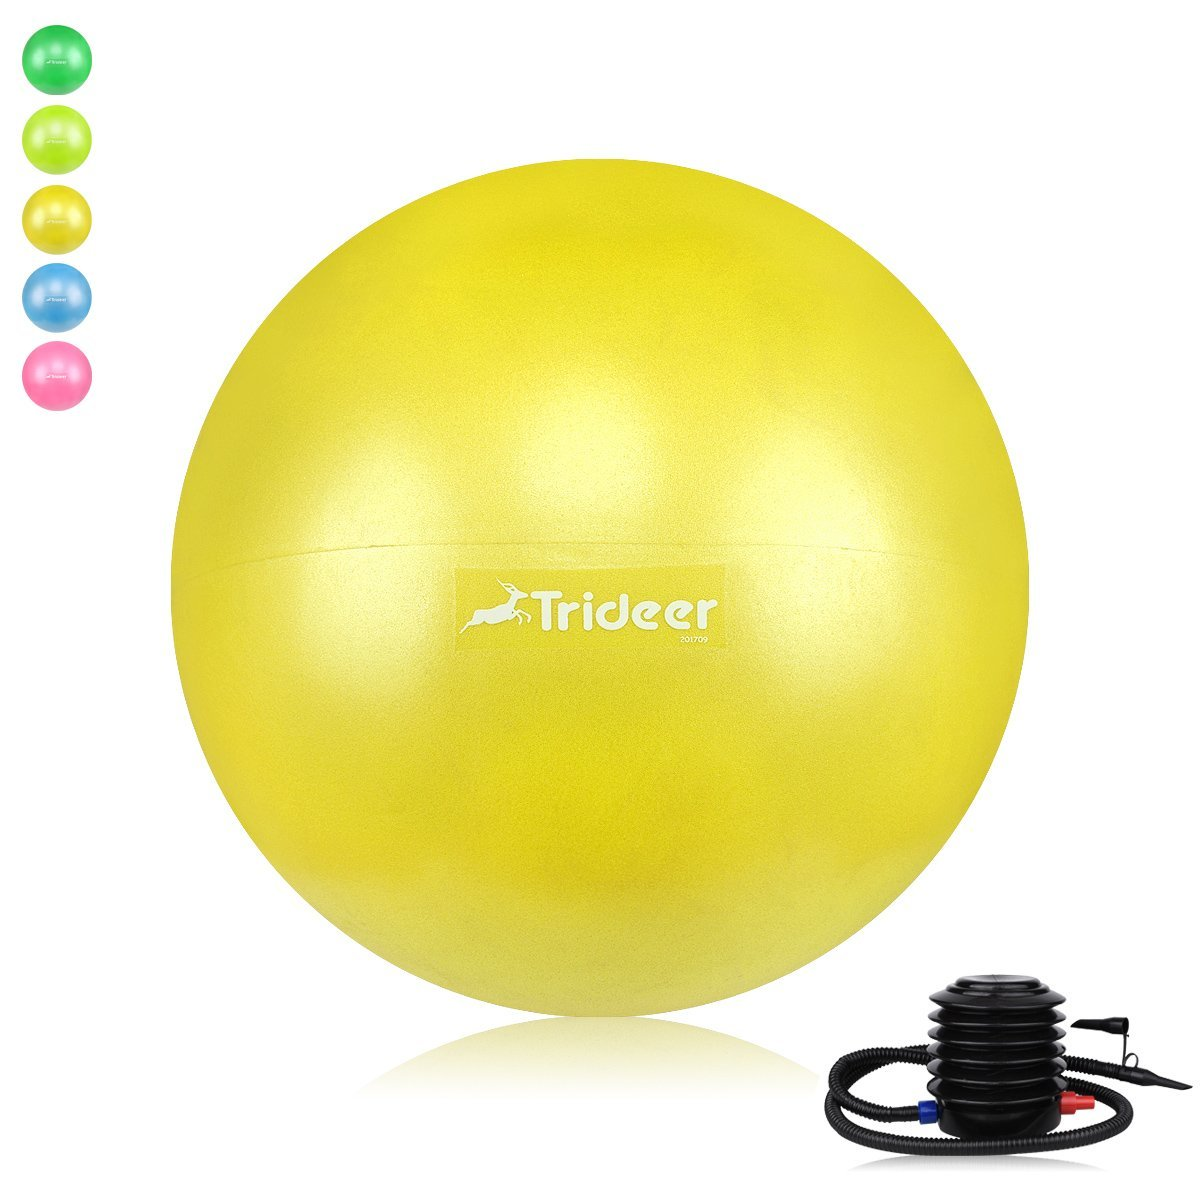 ball chair for kids boppy baby green marbles trideer exercise 45cm classroom flexible seating children s inflatable balance